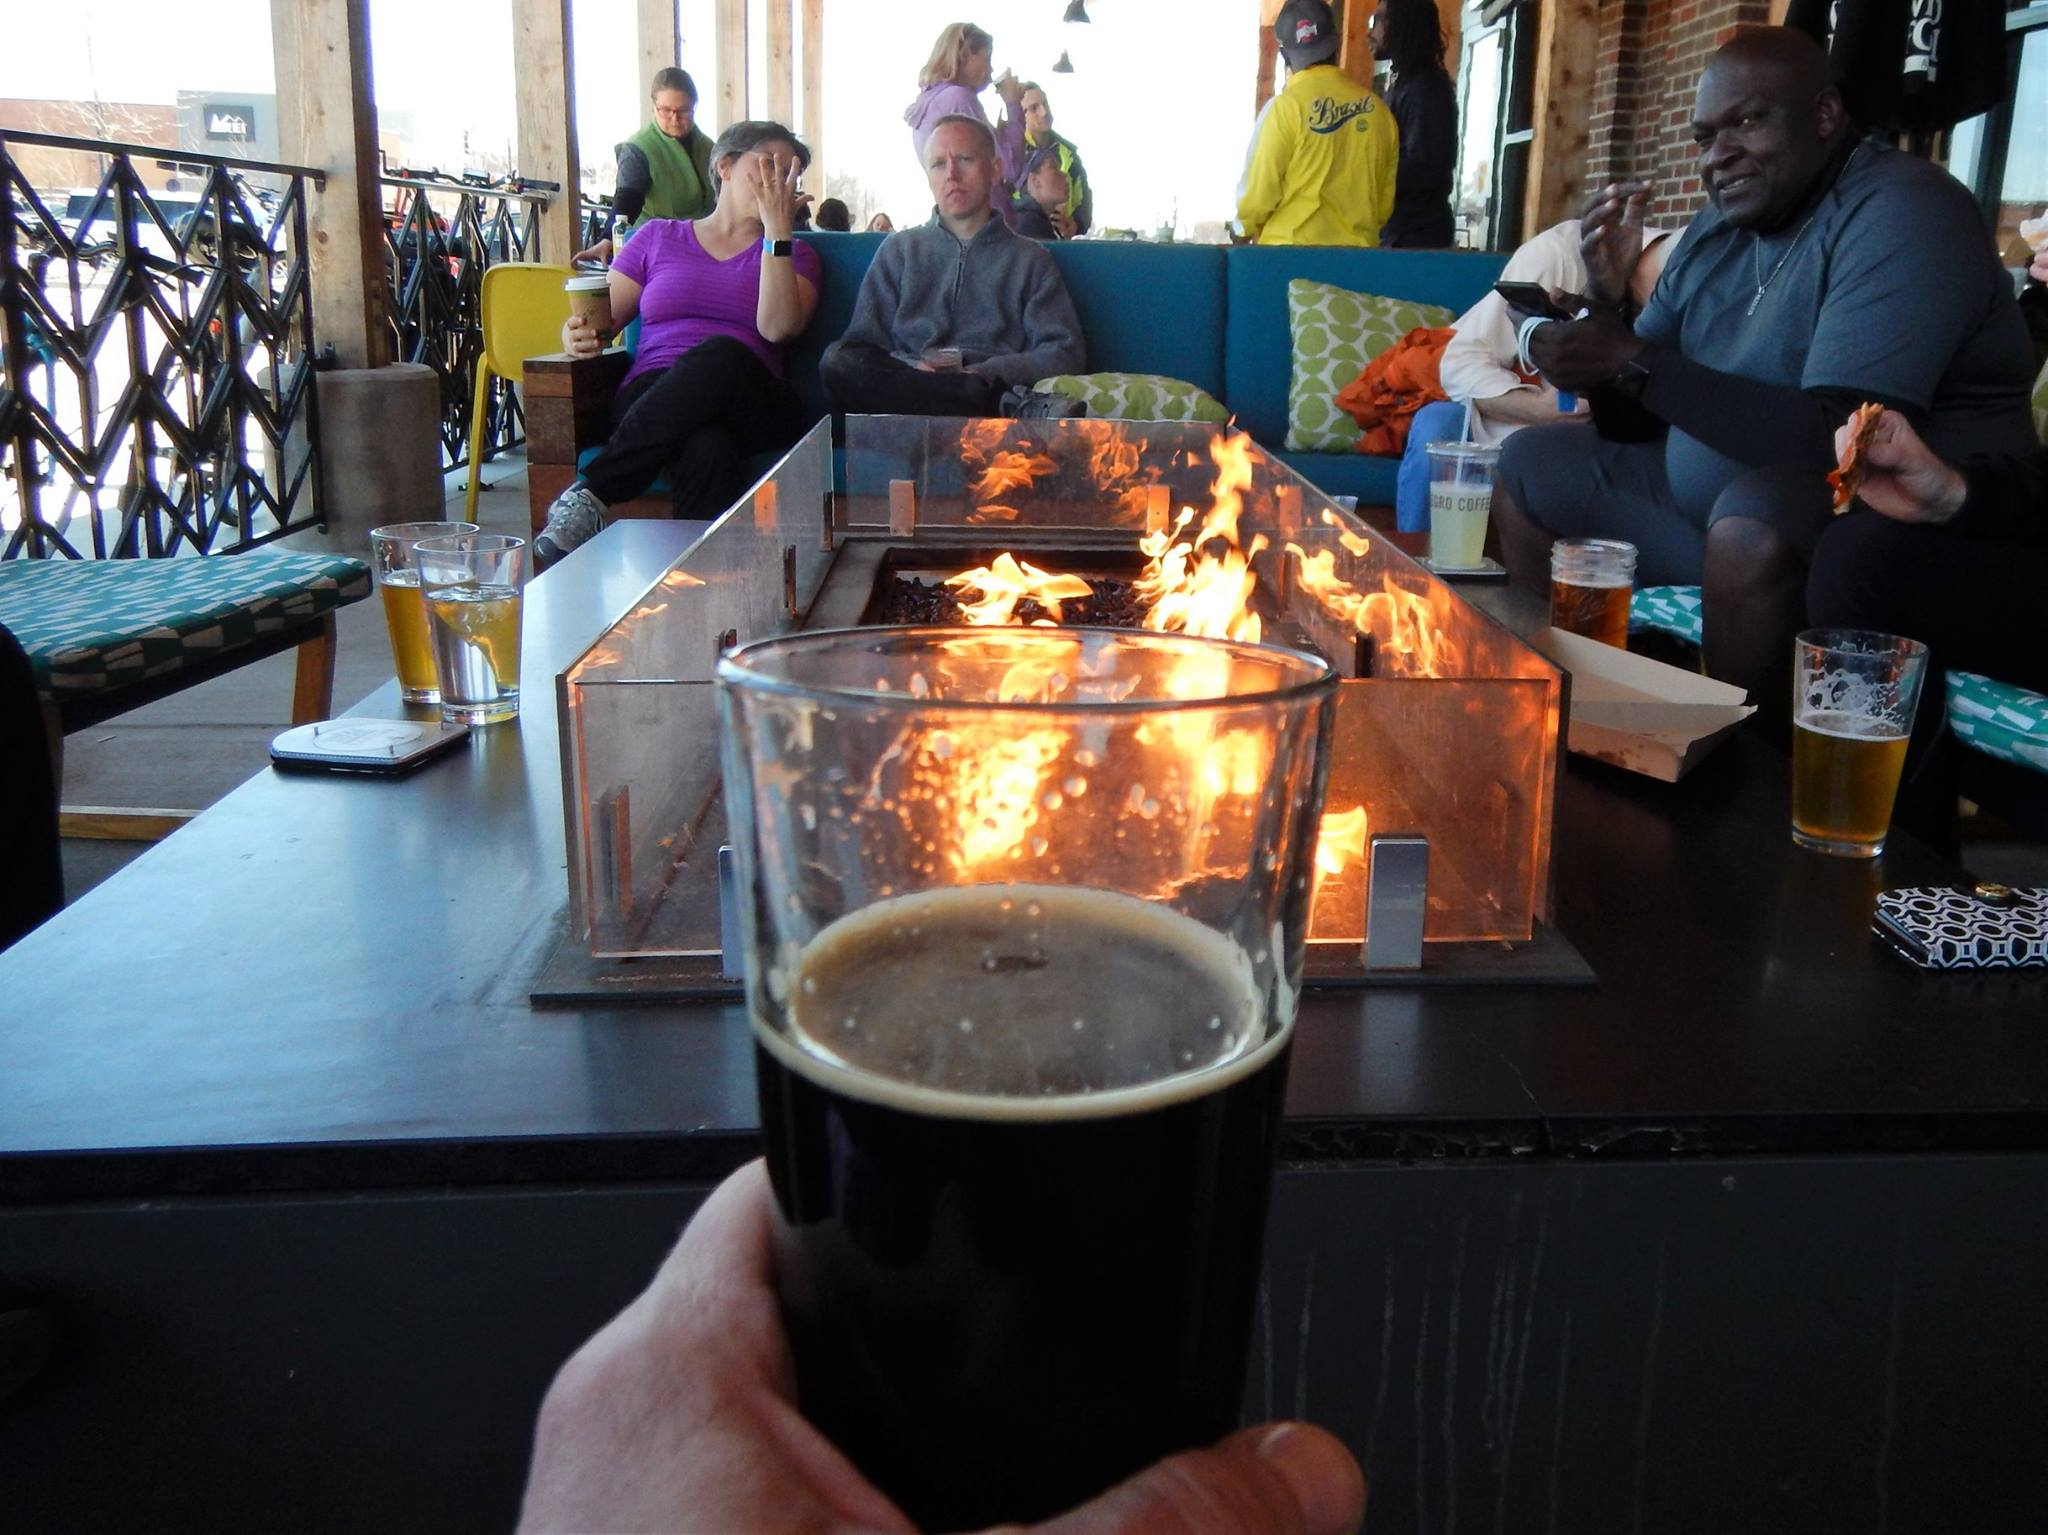 Mmmm...post-ride beverage, fire, friends! Photo credit: Keith 'Lugs' Mayton